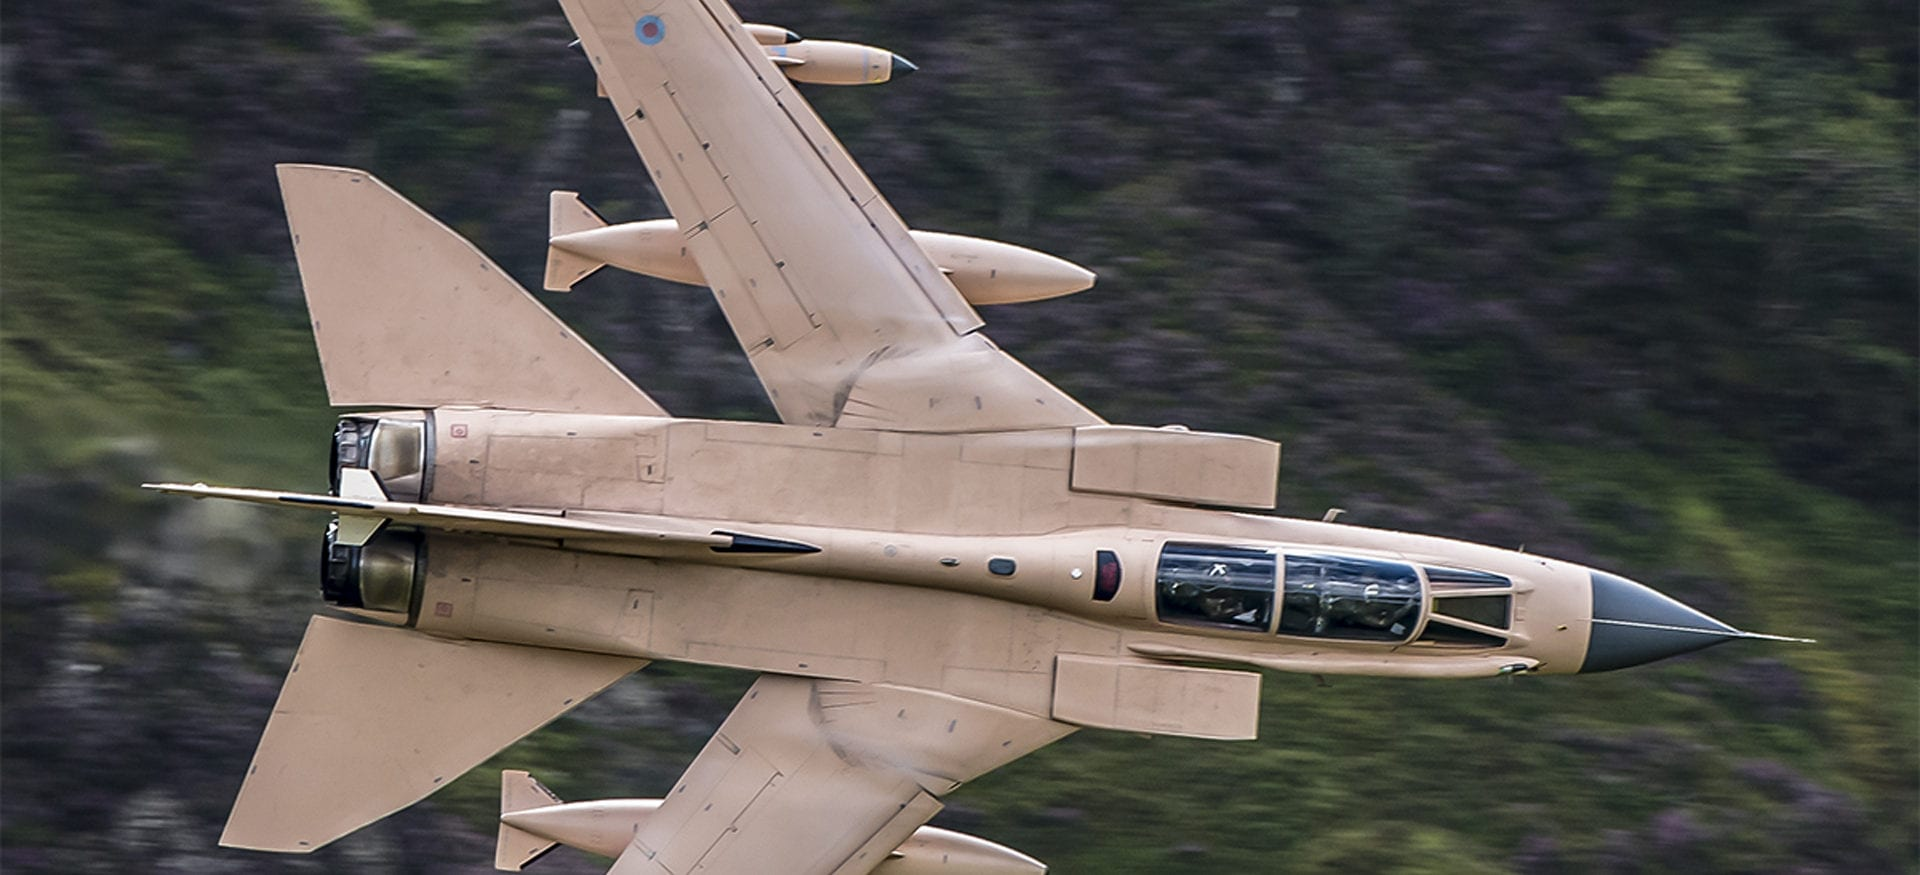 Low flying aircraft on the Mach loop near Torrent Walk Bunkhouse